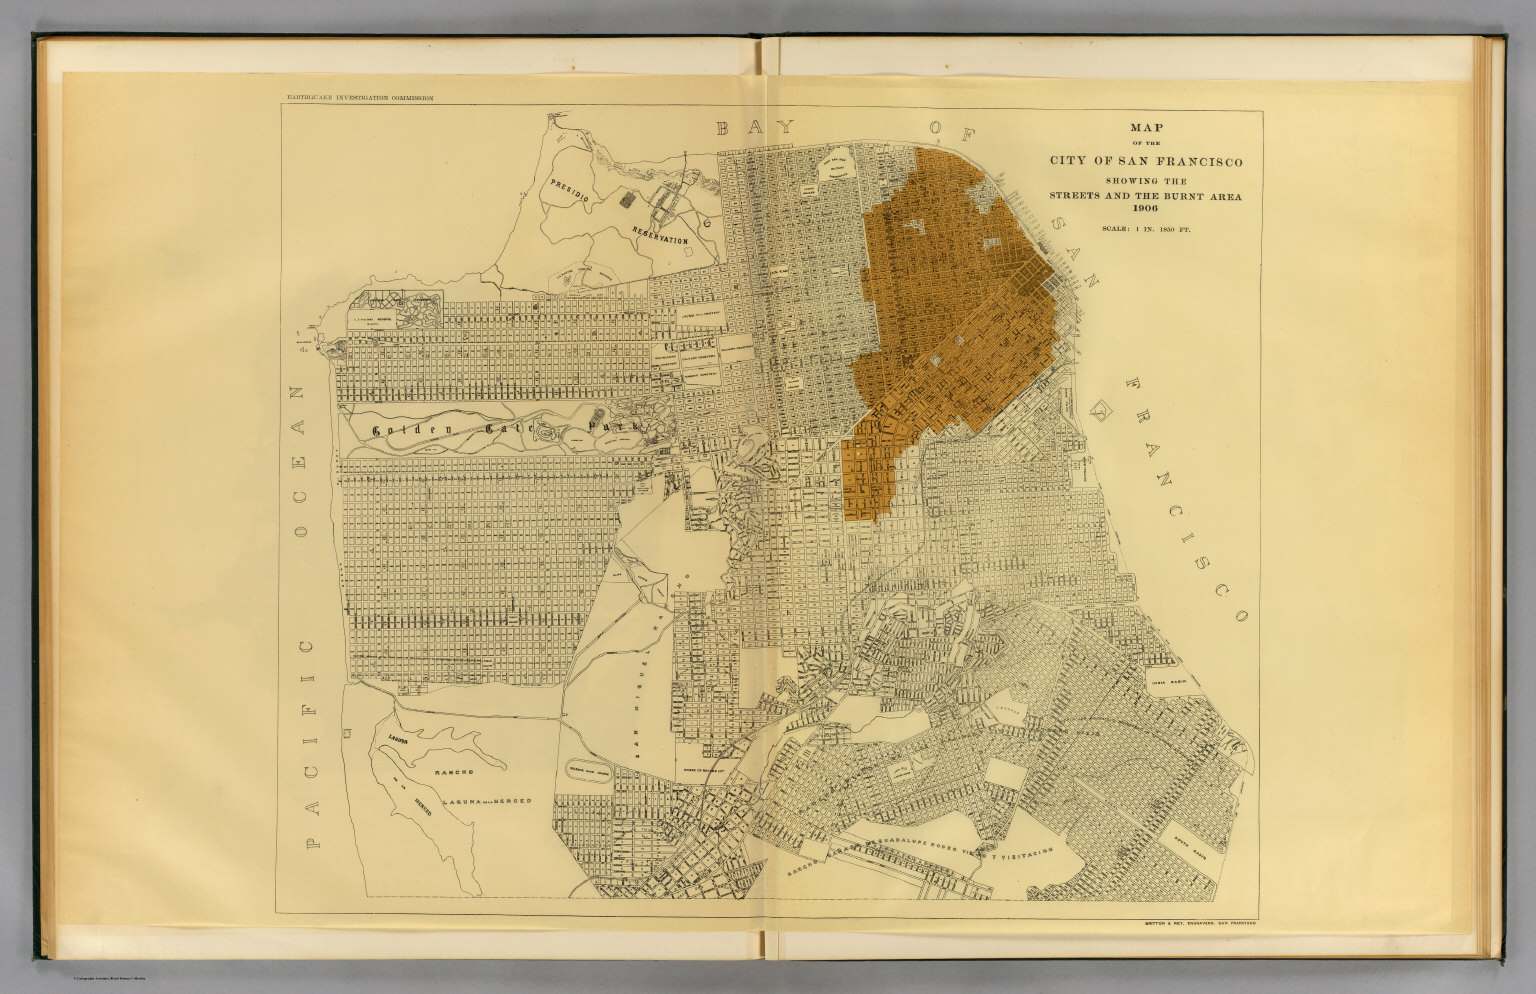 San Francisco Burnt Area 1906 David Rumsey Historical Map Collection